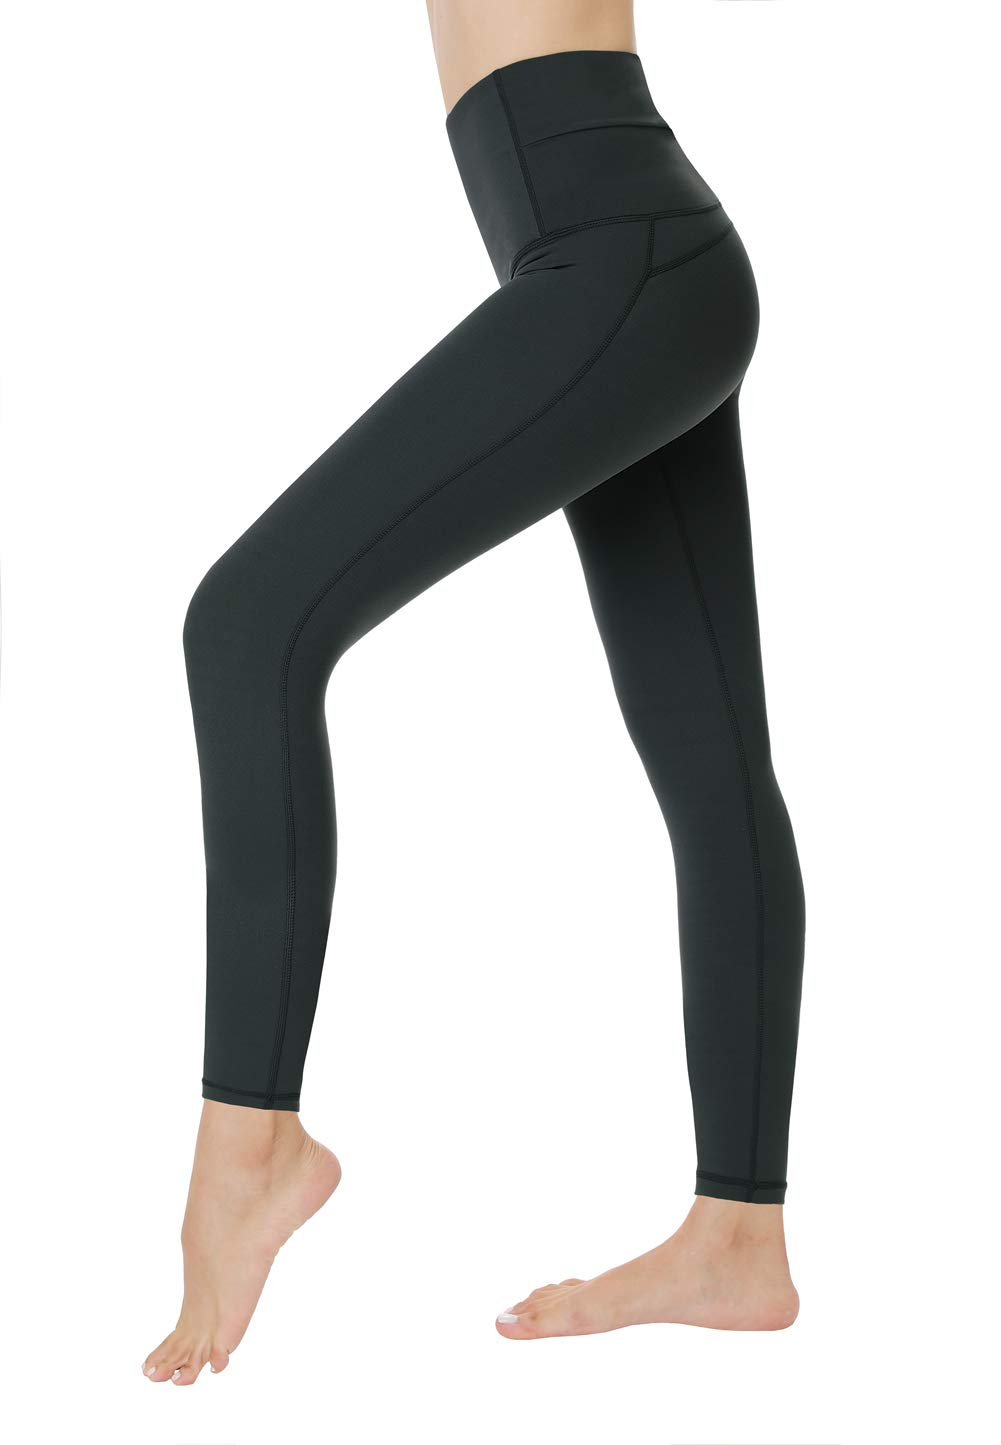 Dragon Fit Compression Leggings Ankle Charcoal